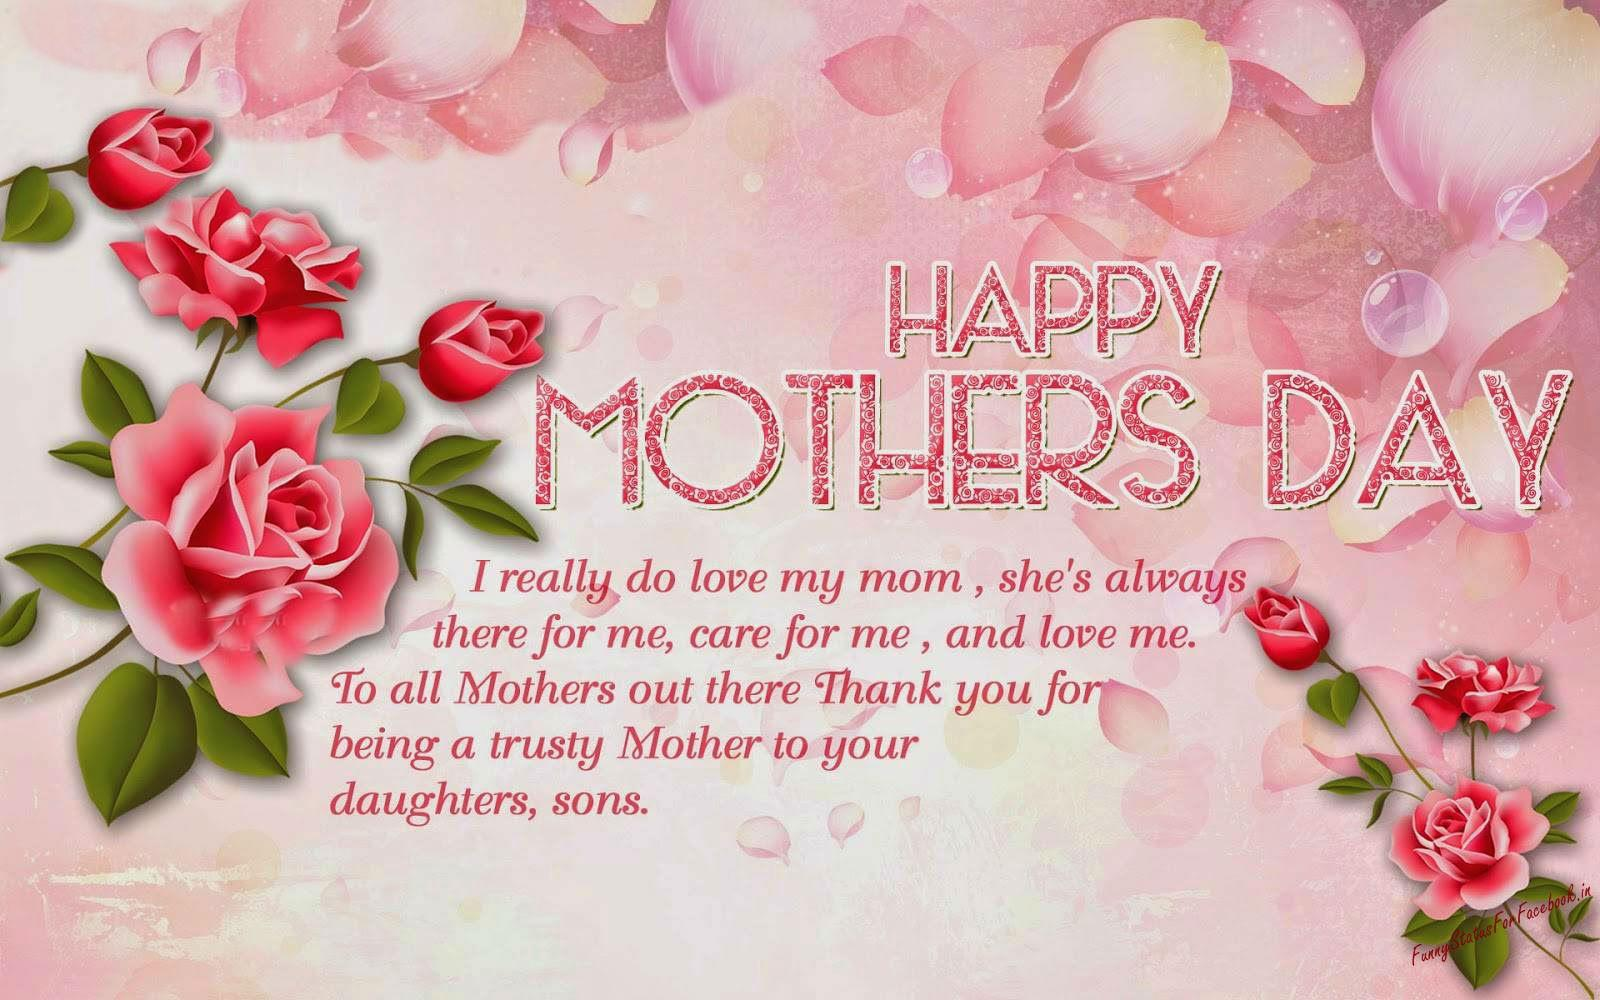 Watch - Mothers Happy day sayings pictures video